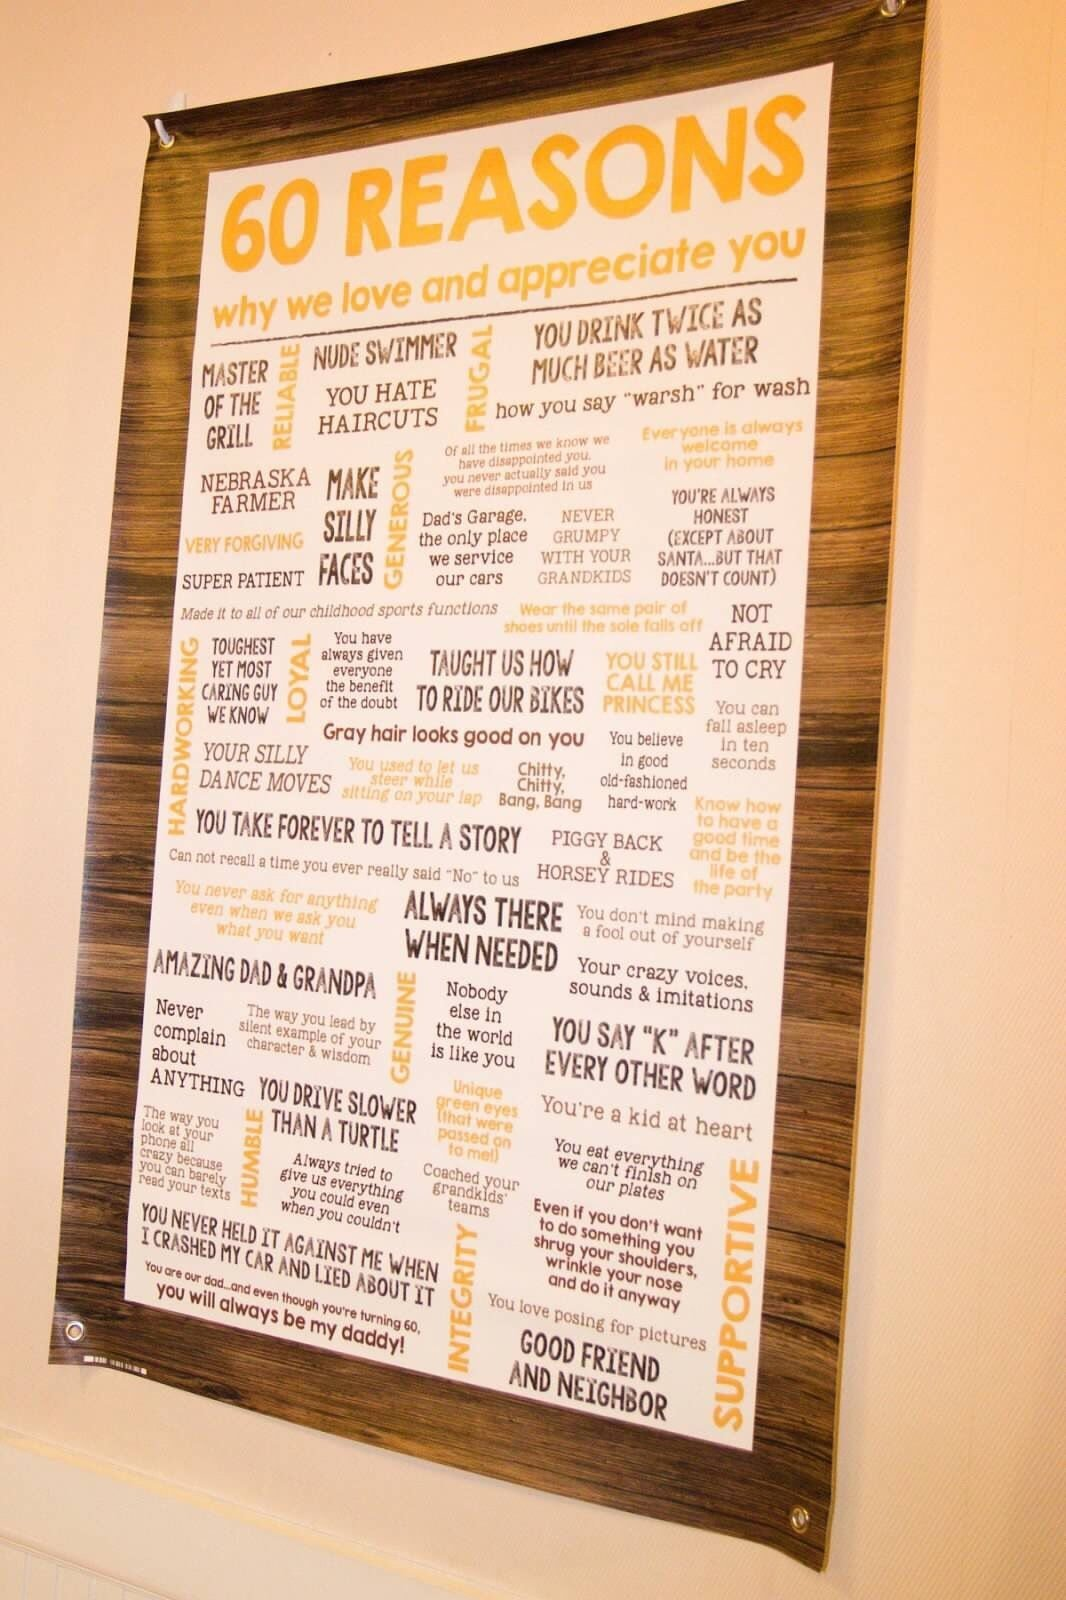 10 Lovely Great 60Th Birthday Gift Ideas rustic 60th birthday party 60 reasons why we love you banner posh 1 2020